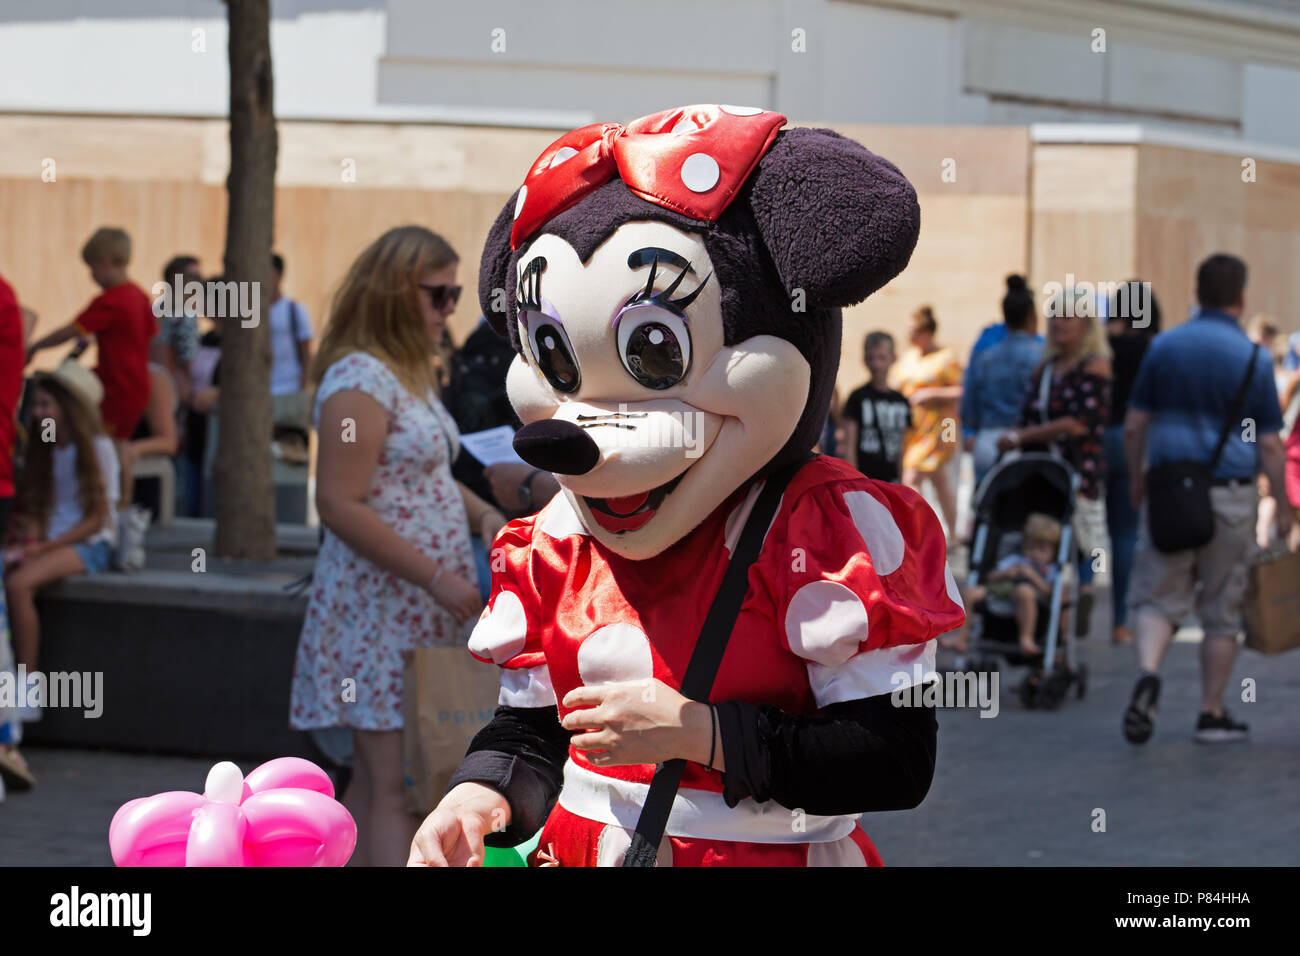 Street Entertainer Dressed As A Minnie Mouse Selling Funny Shaped Balloons To The Public In Liverpool Uk